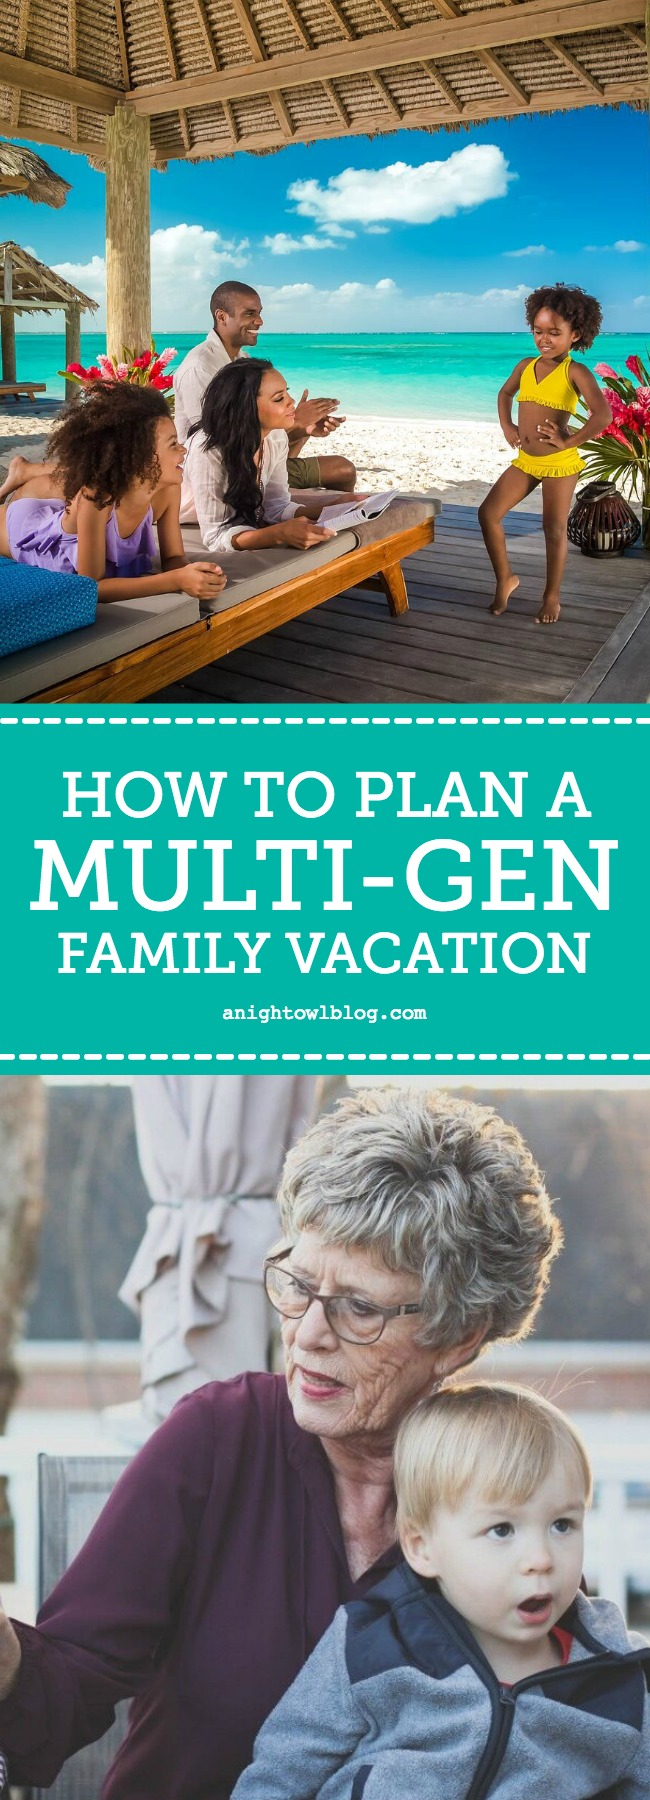 Tips on How To Plan A Multi-Generational Family Vacation